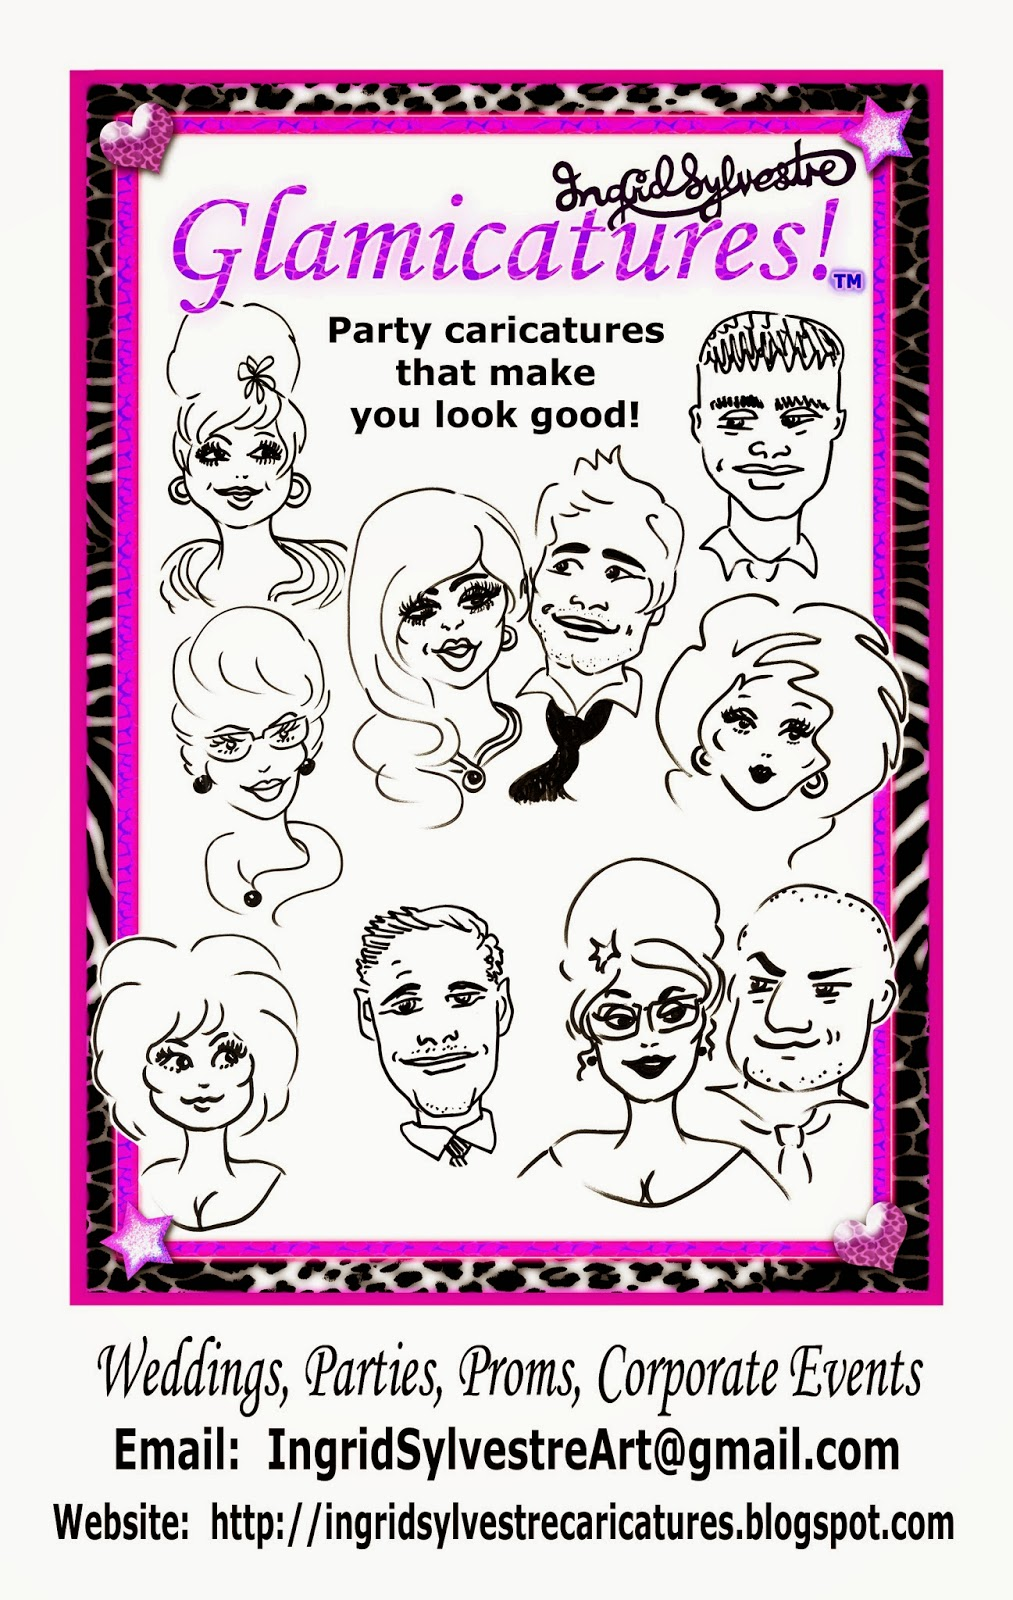 Wedding Entertainment ideas North East UK Wedding Caricatures Party Caricatures Conference Caricatures Christmas Party Caricatures Wedding ideas Wedding planning Gay Weddings Gay Wedding ideas Gay Wedding Entertainment Newcastle upon tyne Durham Sunderland Teesside Northumberland Yorkshire Ingrid Sylvestre